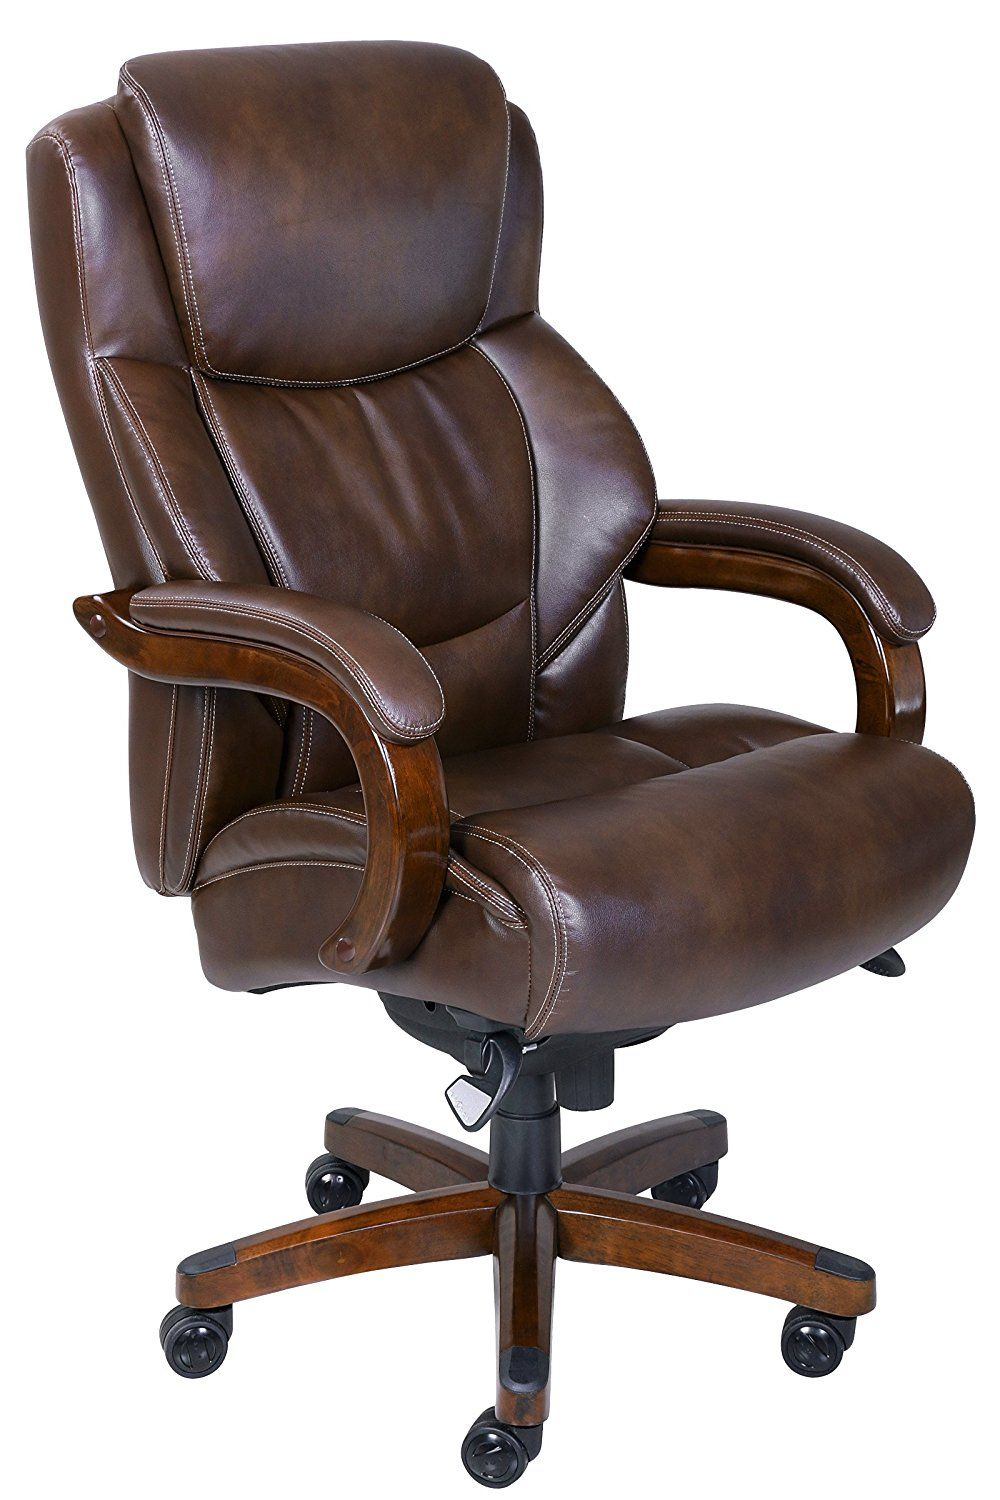 In-depth review of the La-Z-Boy Delano Chestnut Brown Office Chair